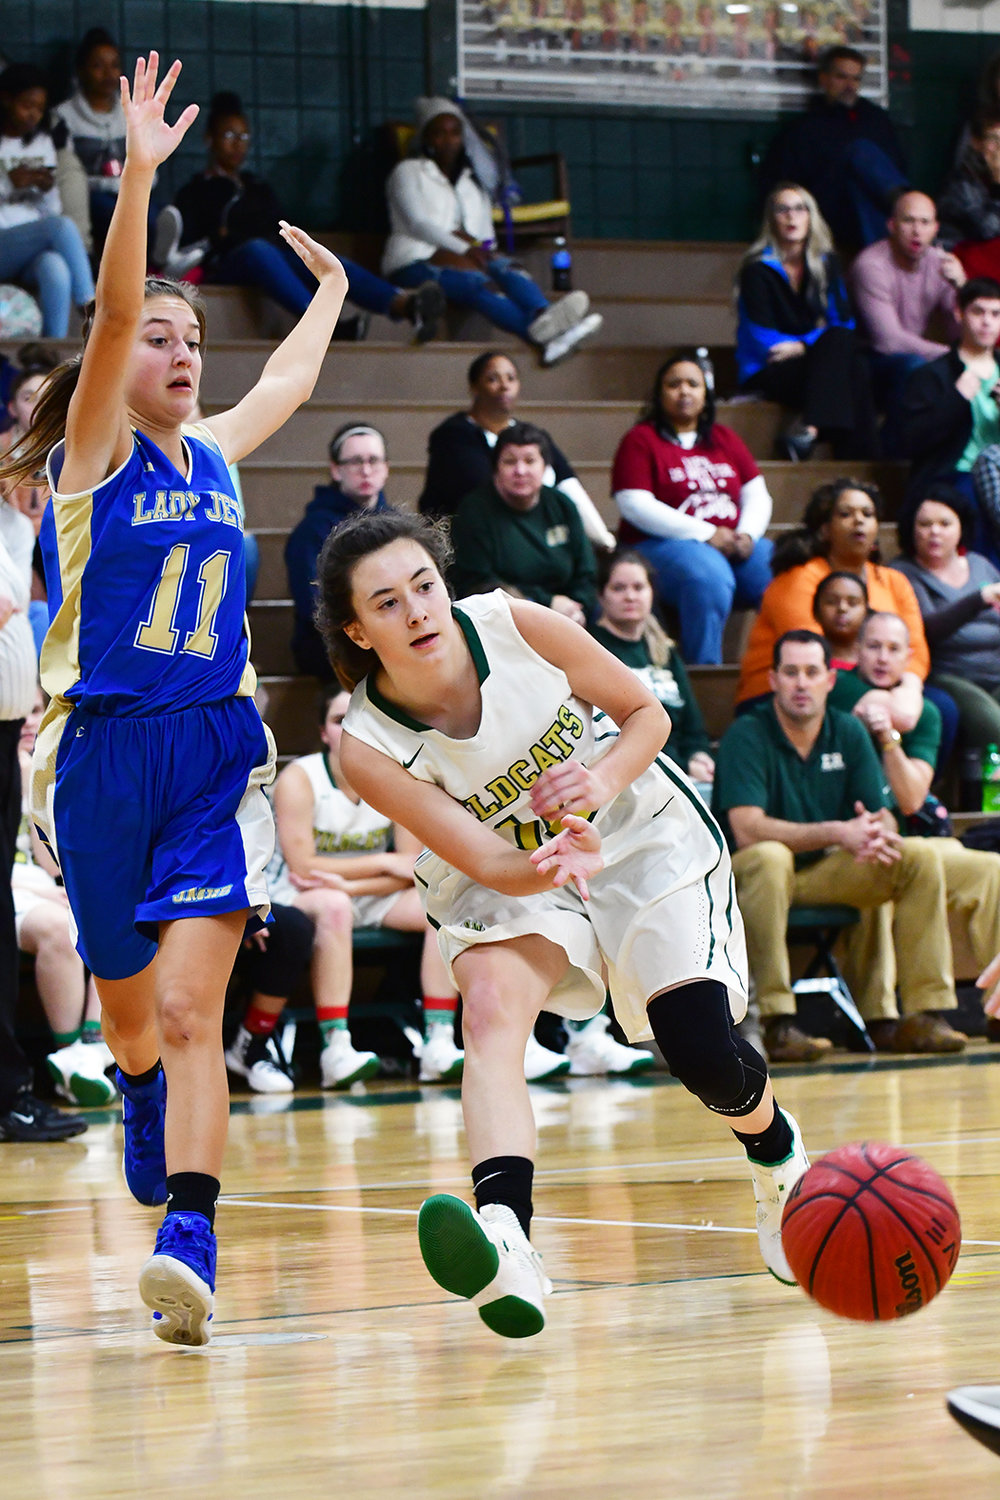 Lady Wildcat Lilly Whitaker passes the ball as Jet Avery Headen applies defense. The Lady Jets lost their game 47-44.